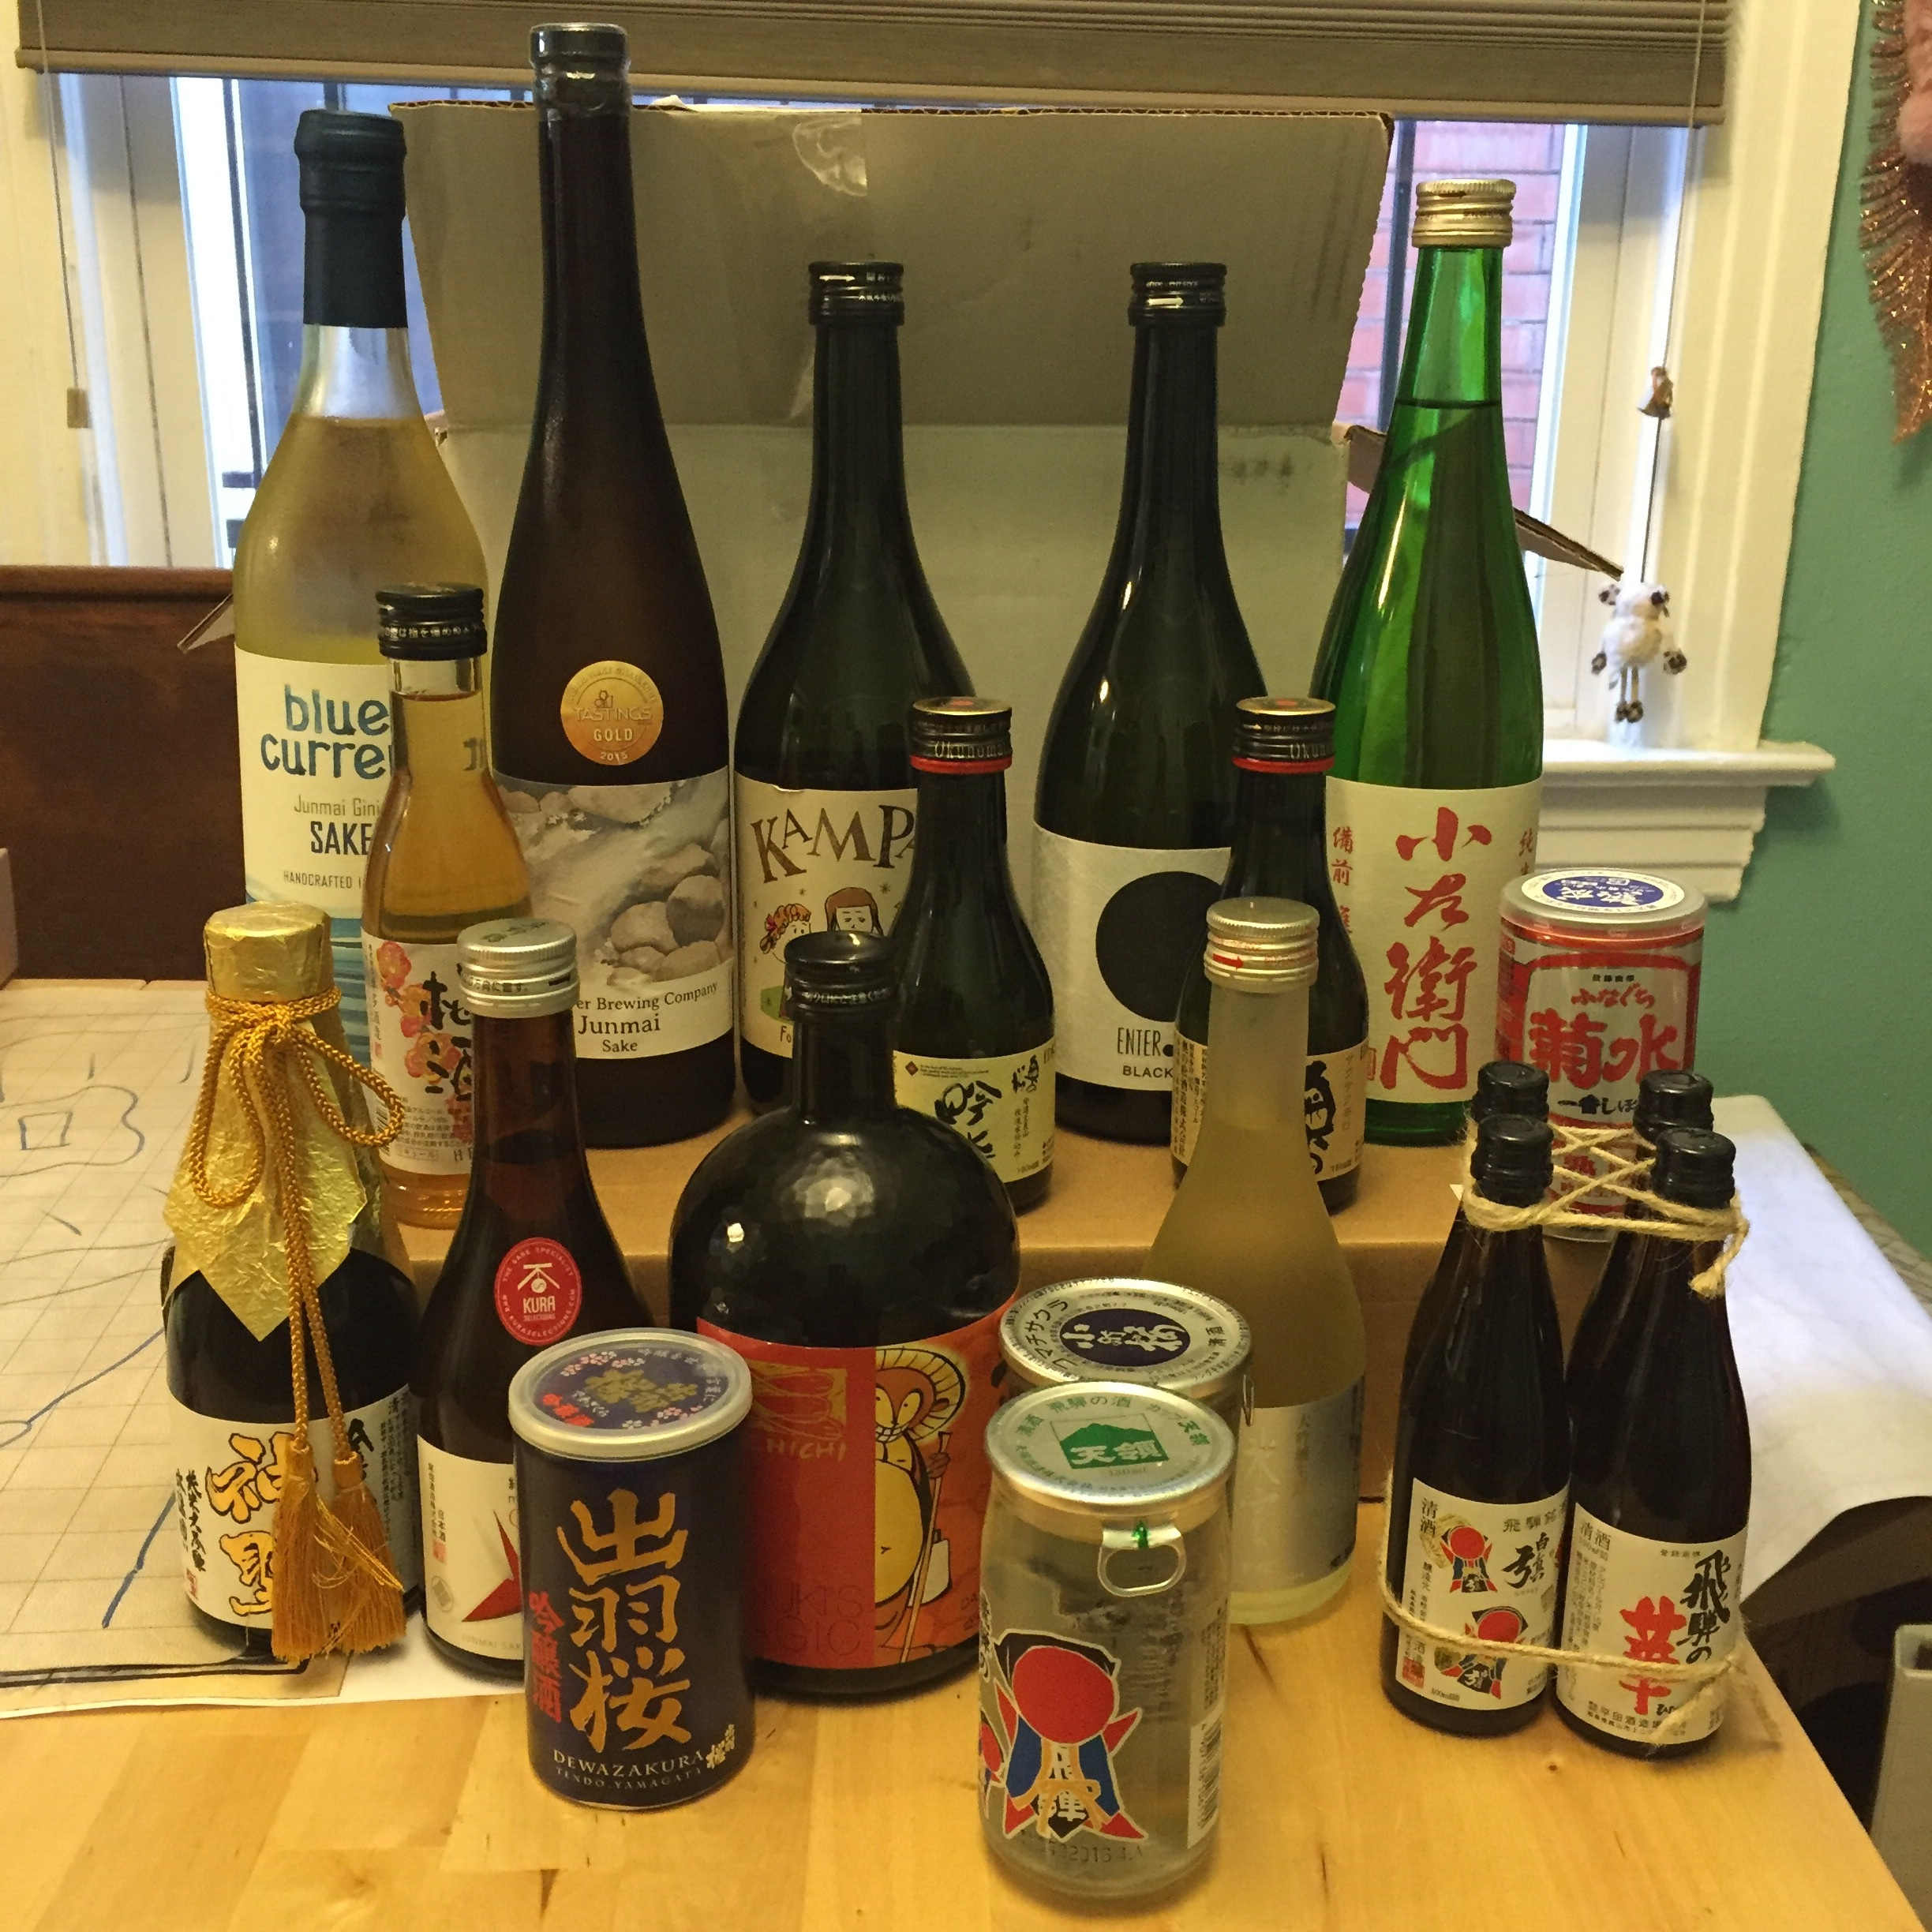 Some of this year's sake selection